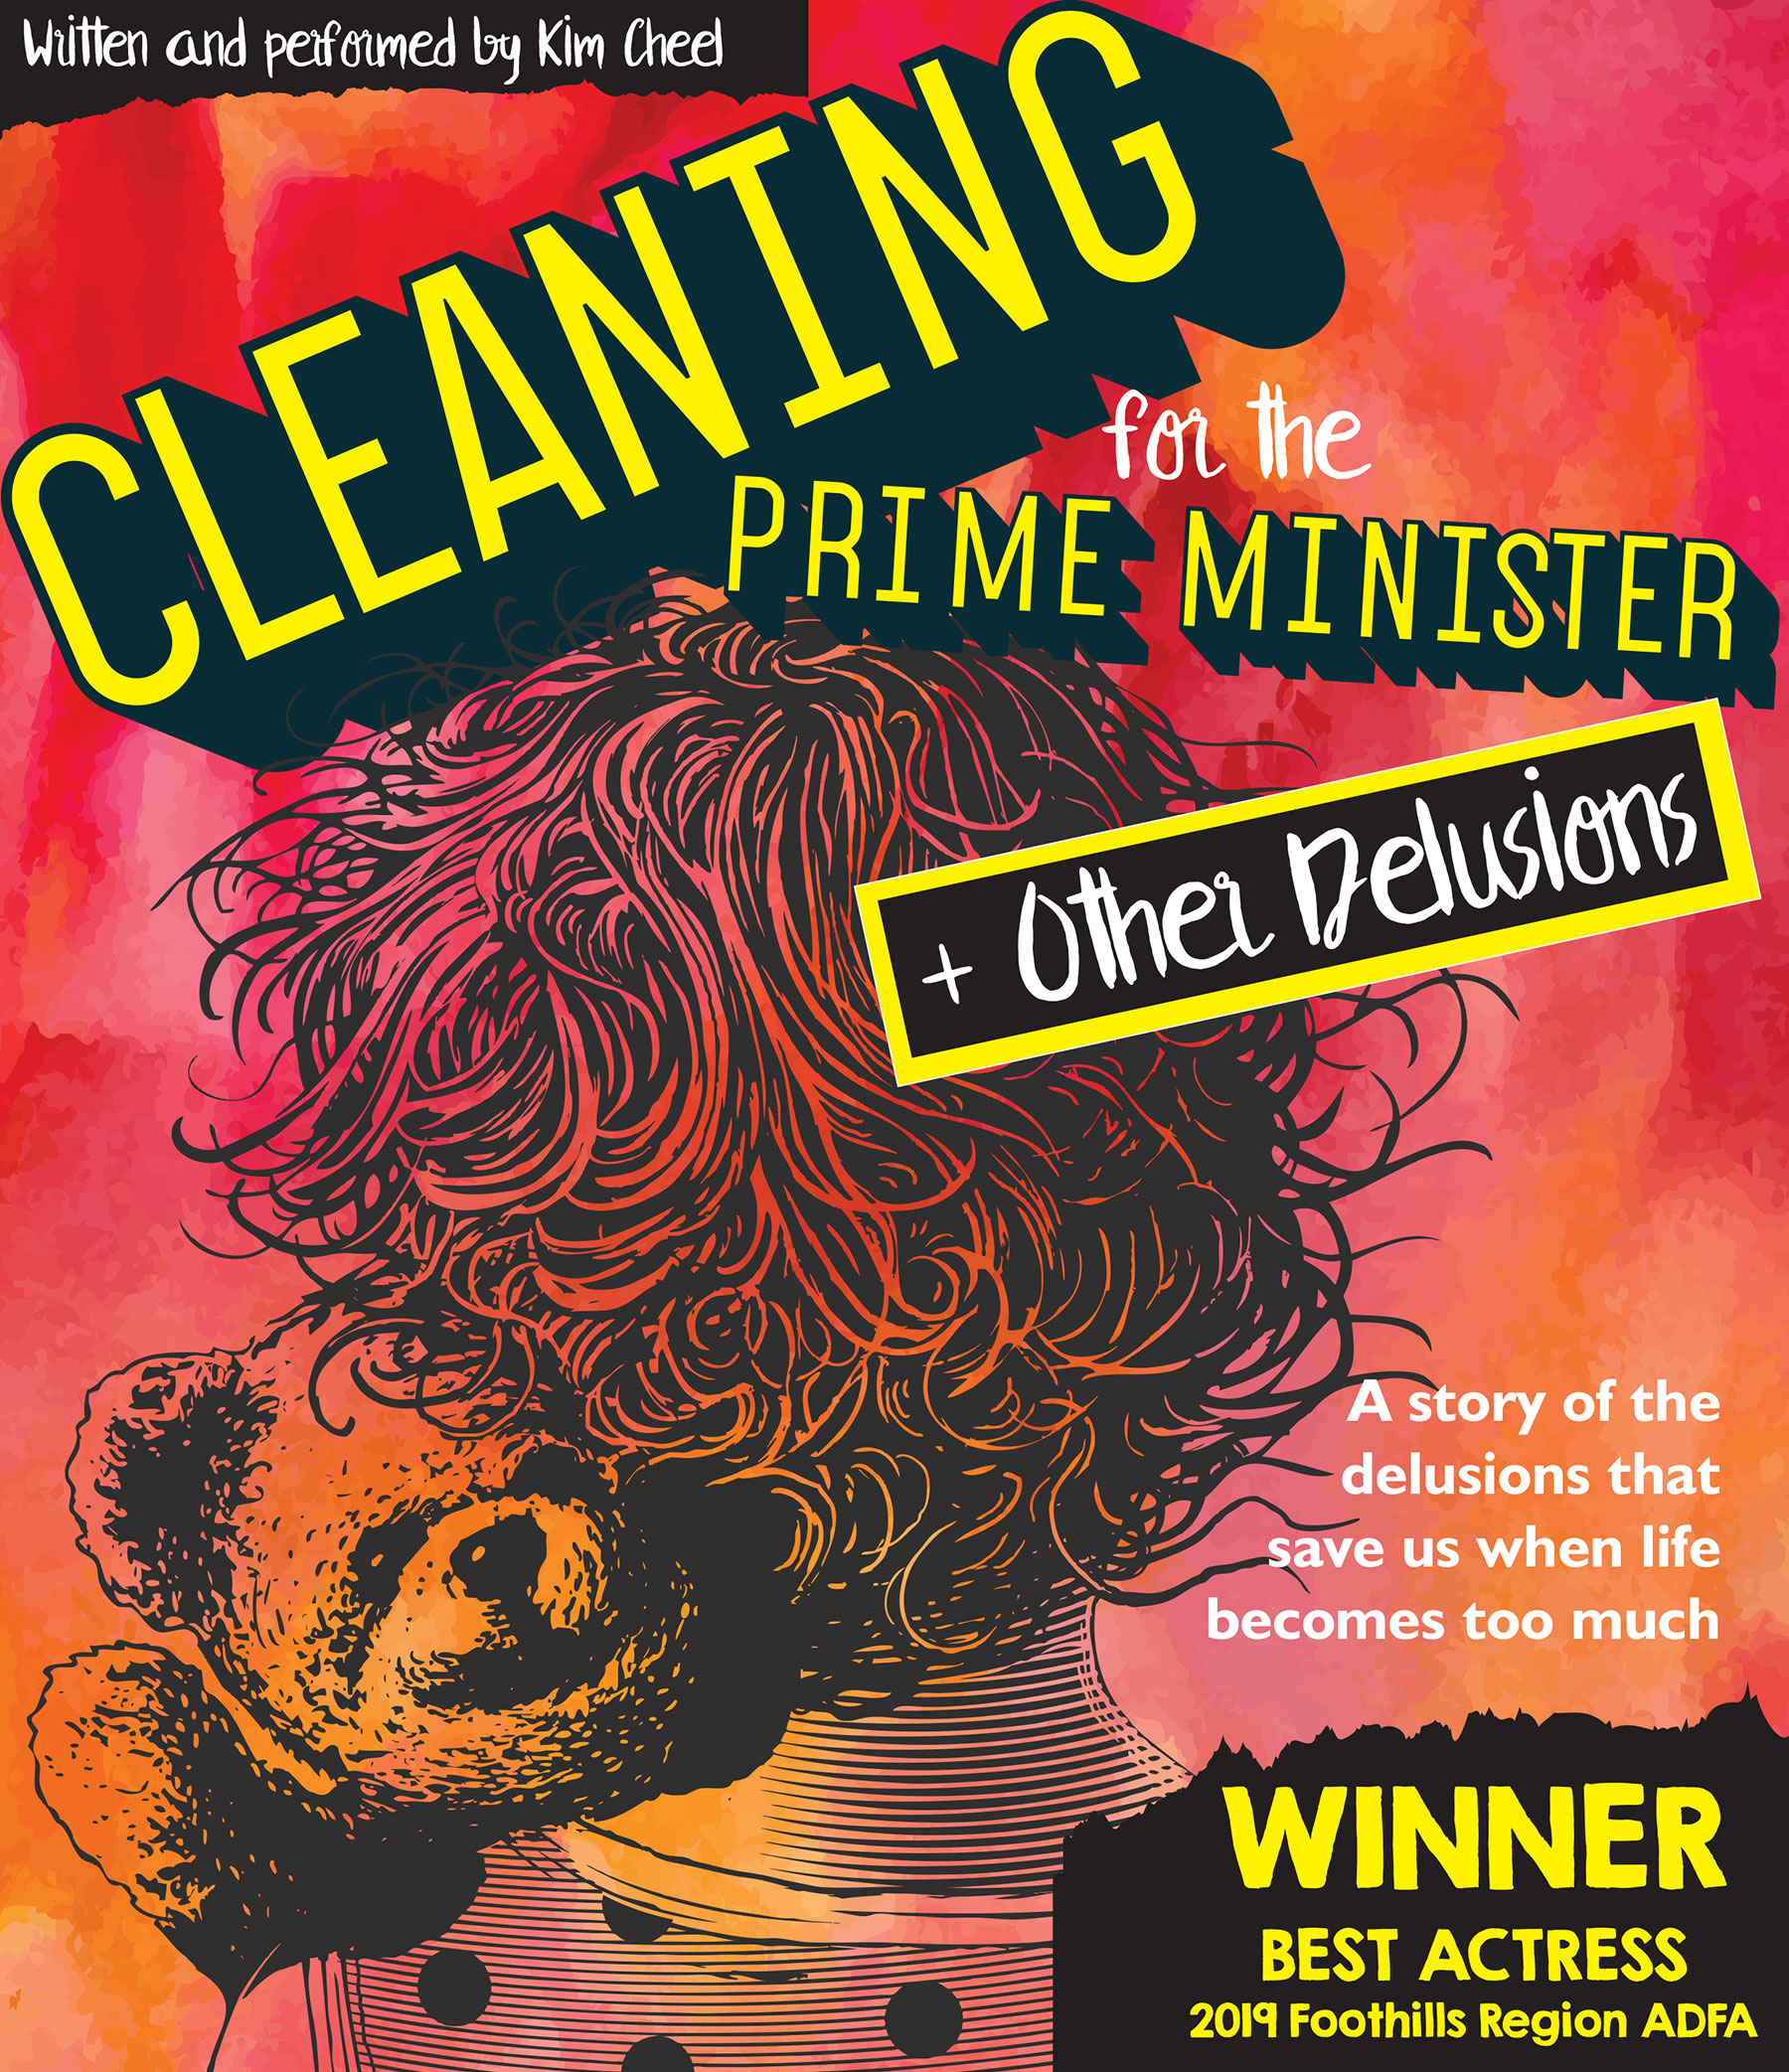 Cleaning for the Prime Minister + Other Delusions